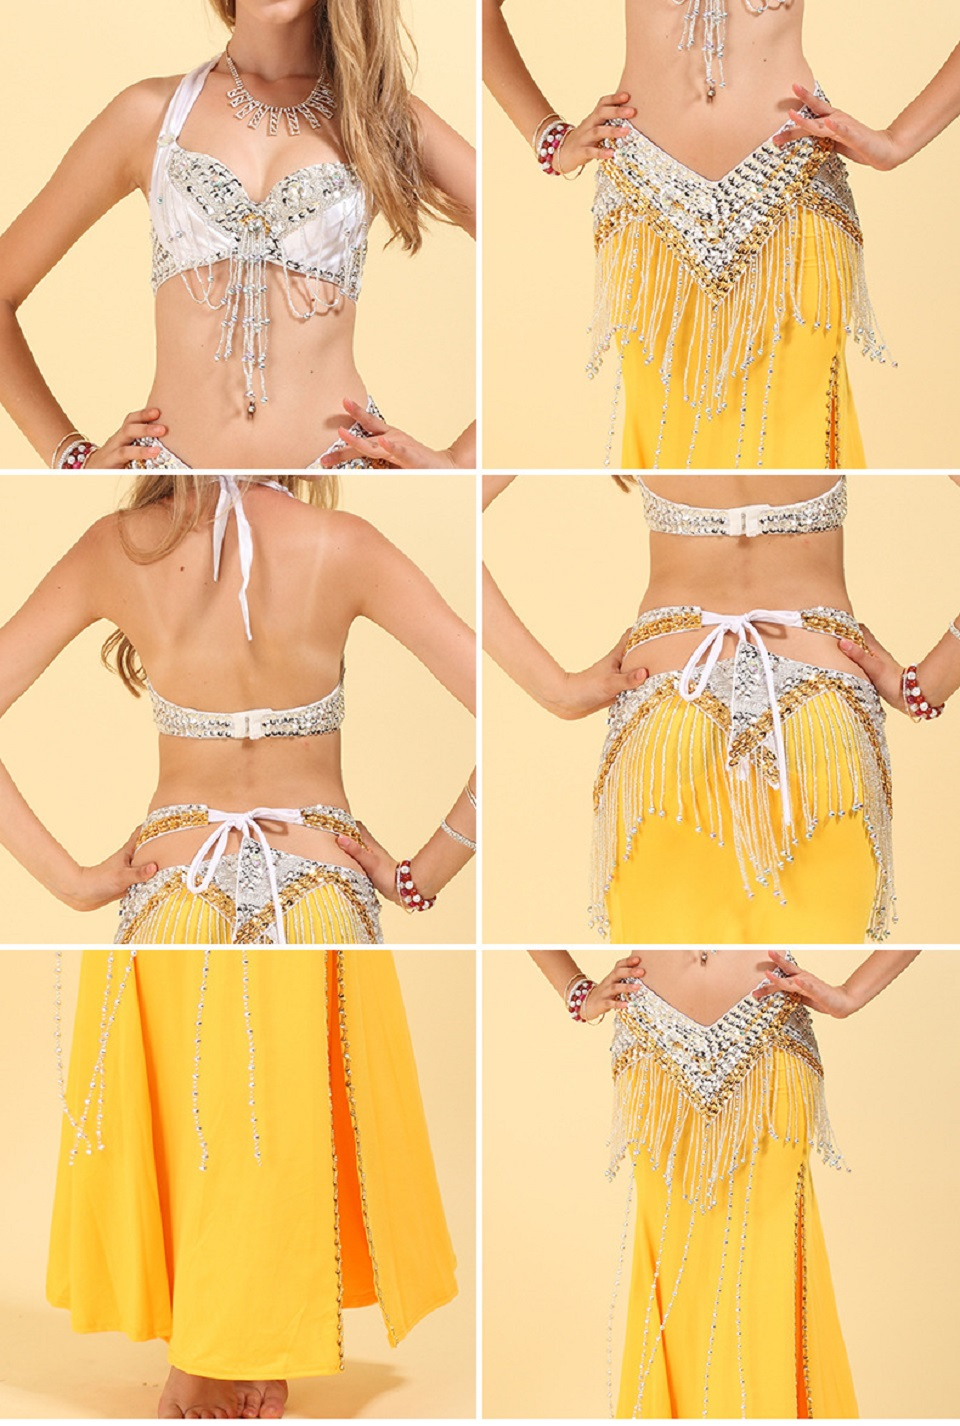 Belly Dance Competition Set